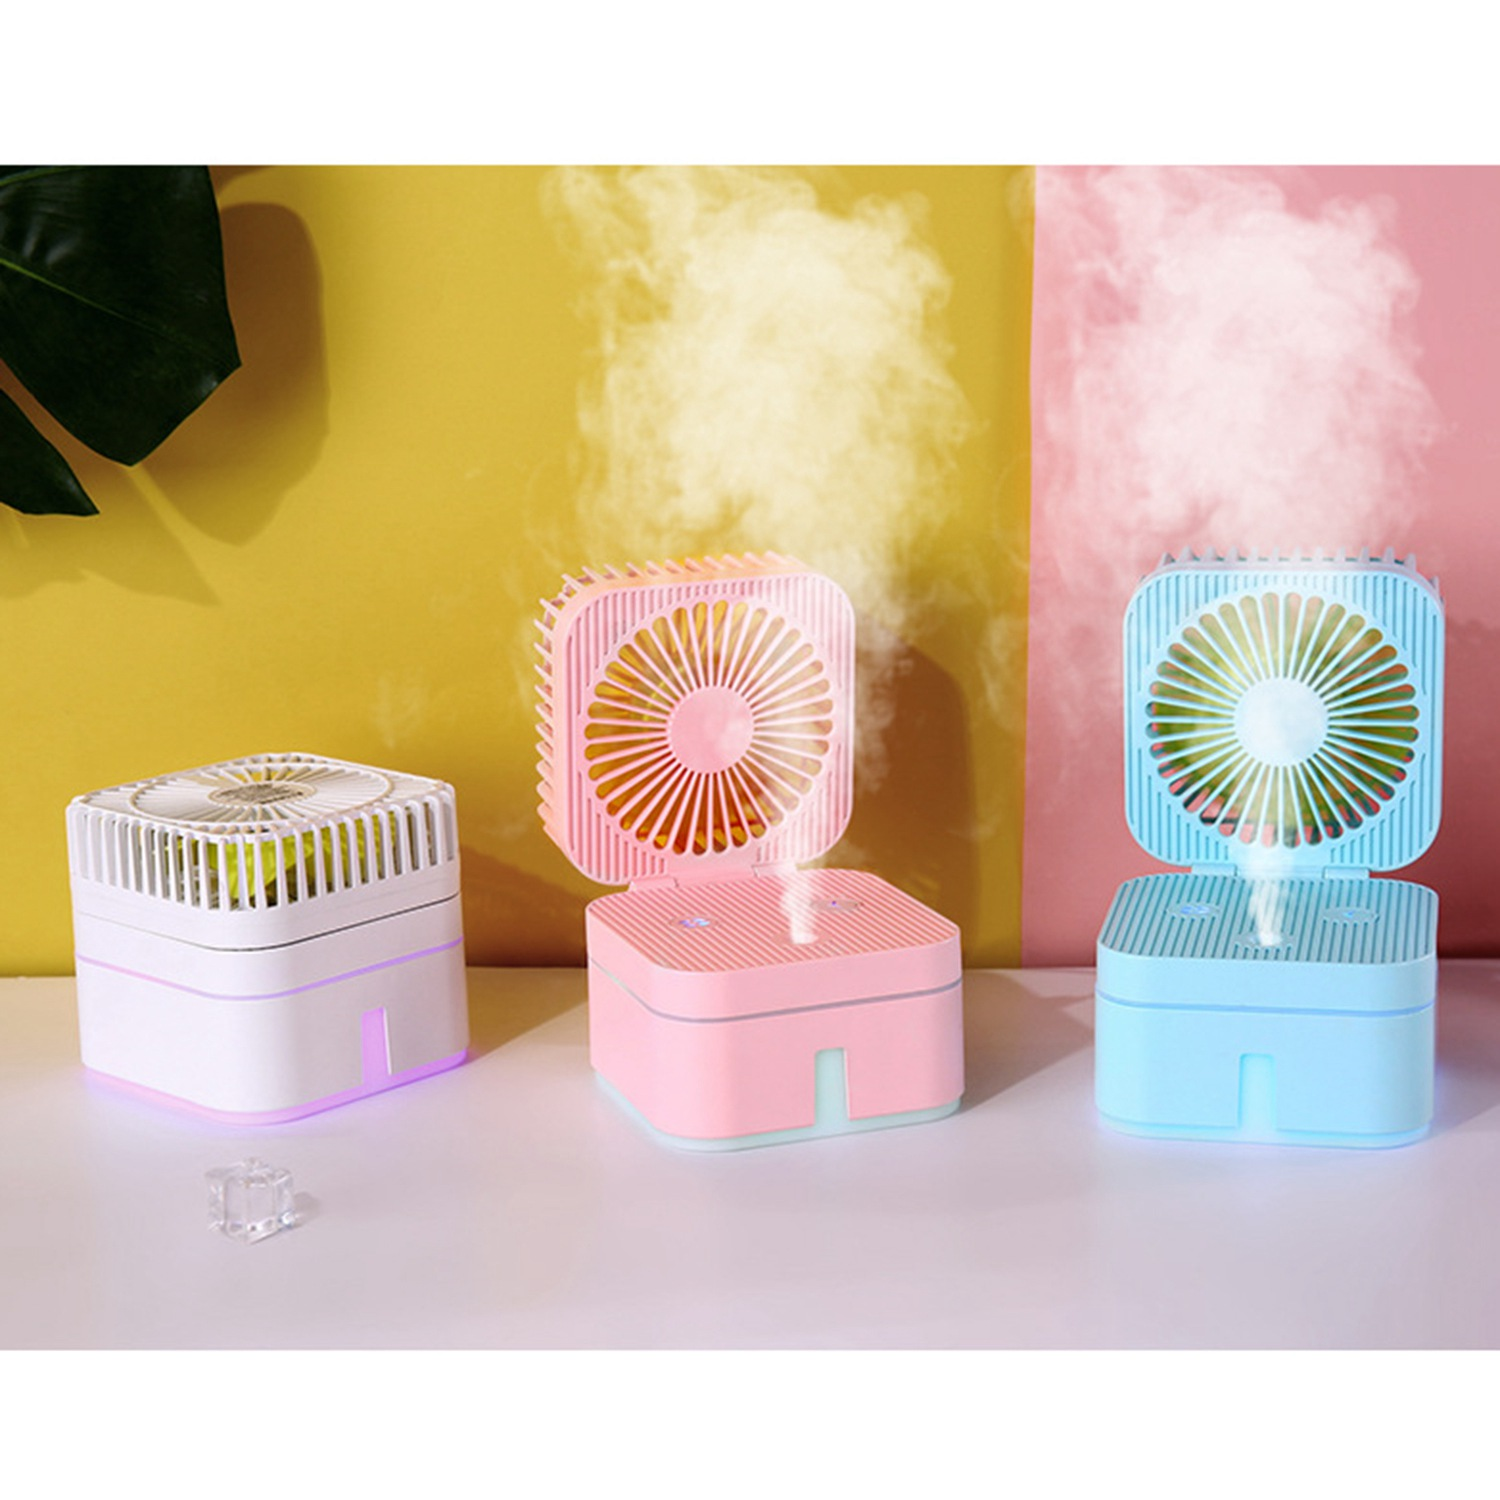 USB Table Desk Personal Fan USB Rechargeable Humidifier Small Spray Fan Mini Household Nightlight Colorful Atmosphere Lamp Portable Touch Electric Cooling Fan for Home Office Table Color : Pink